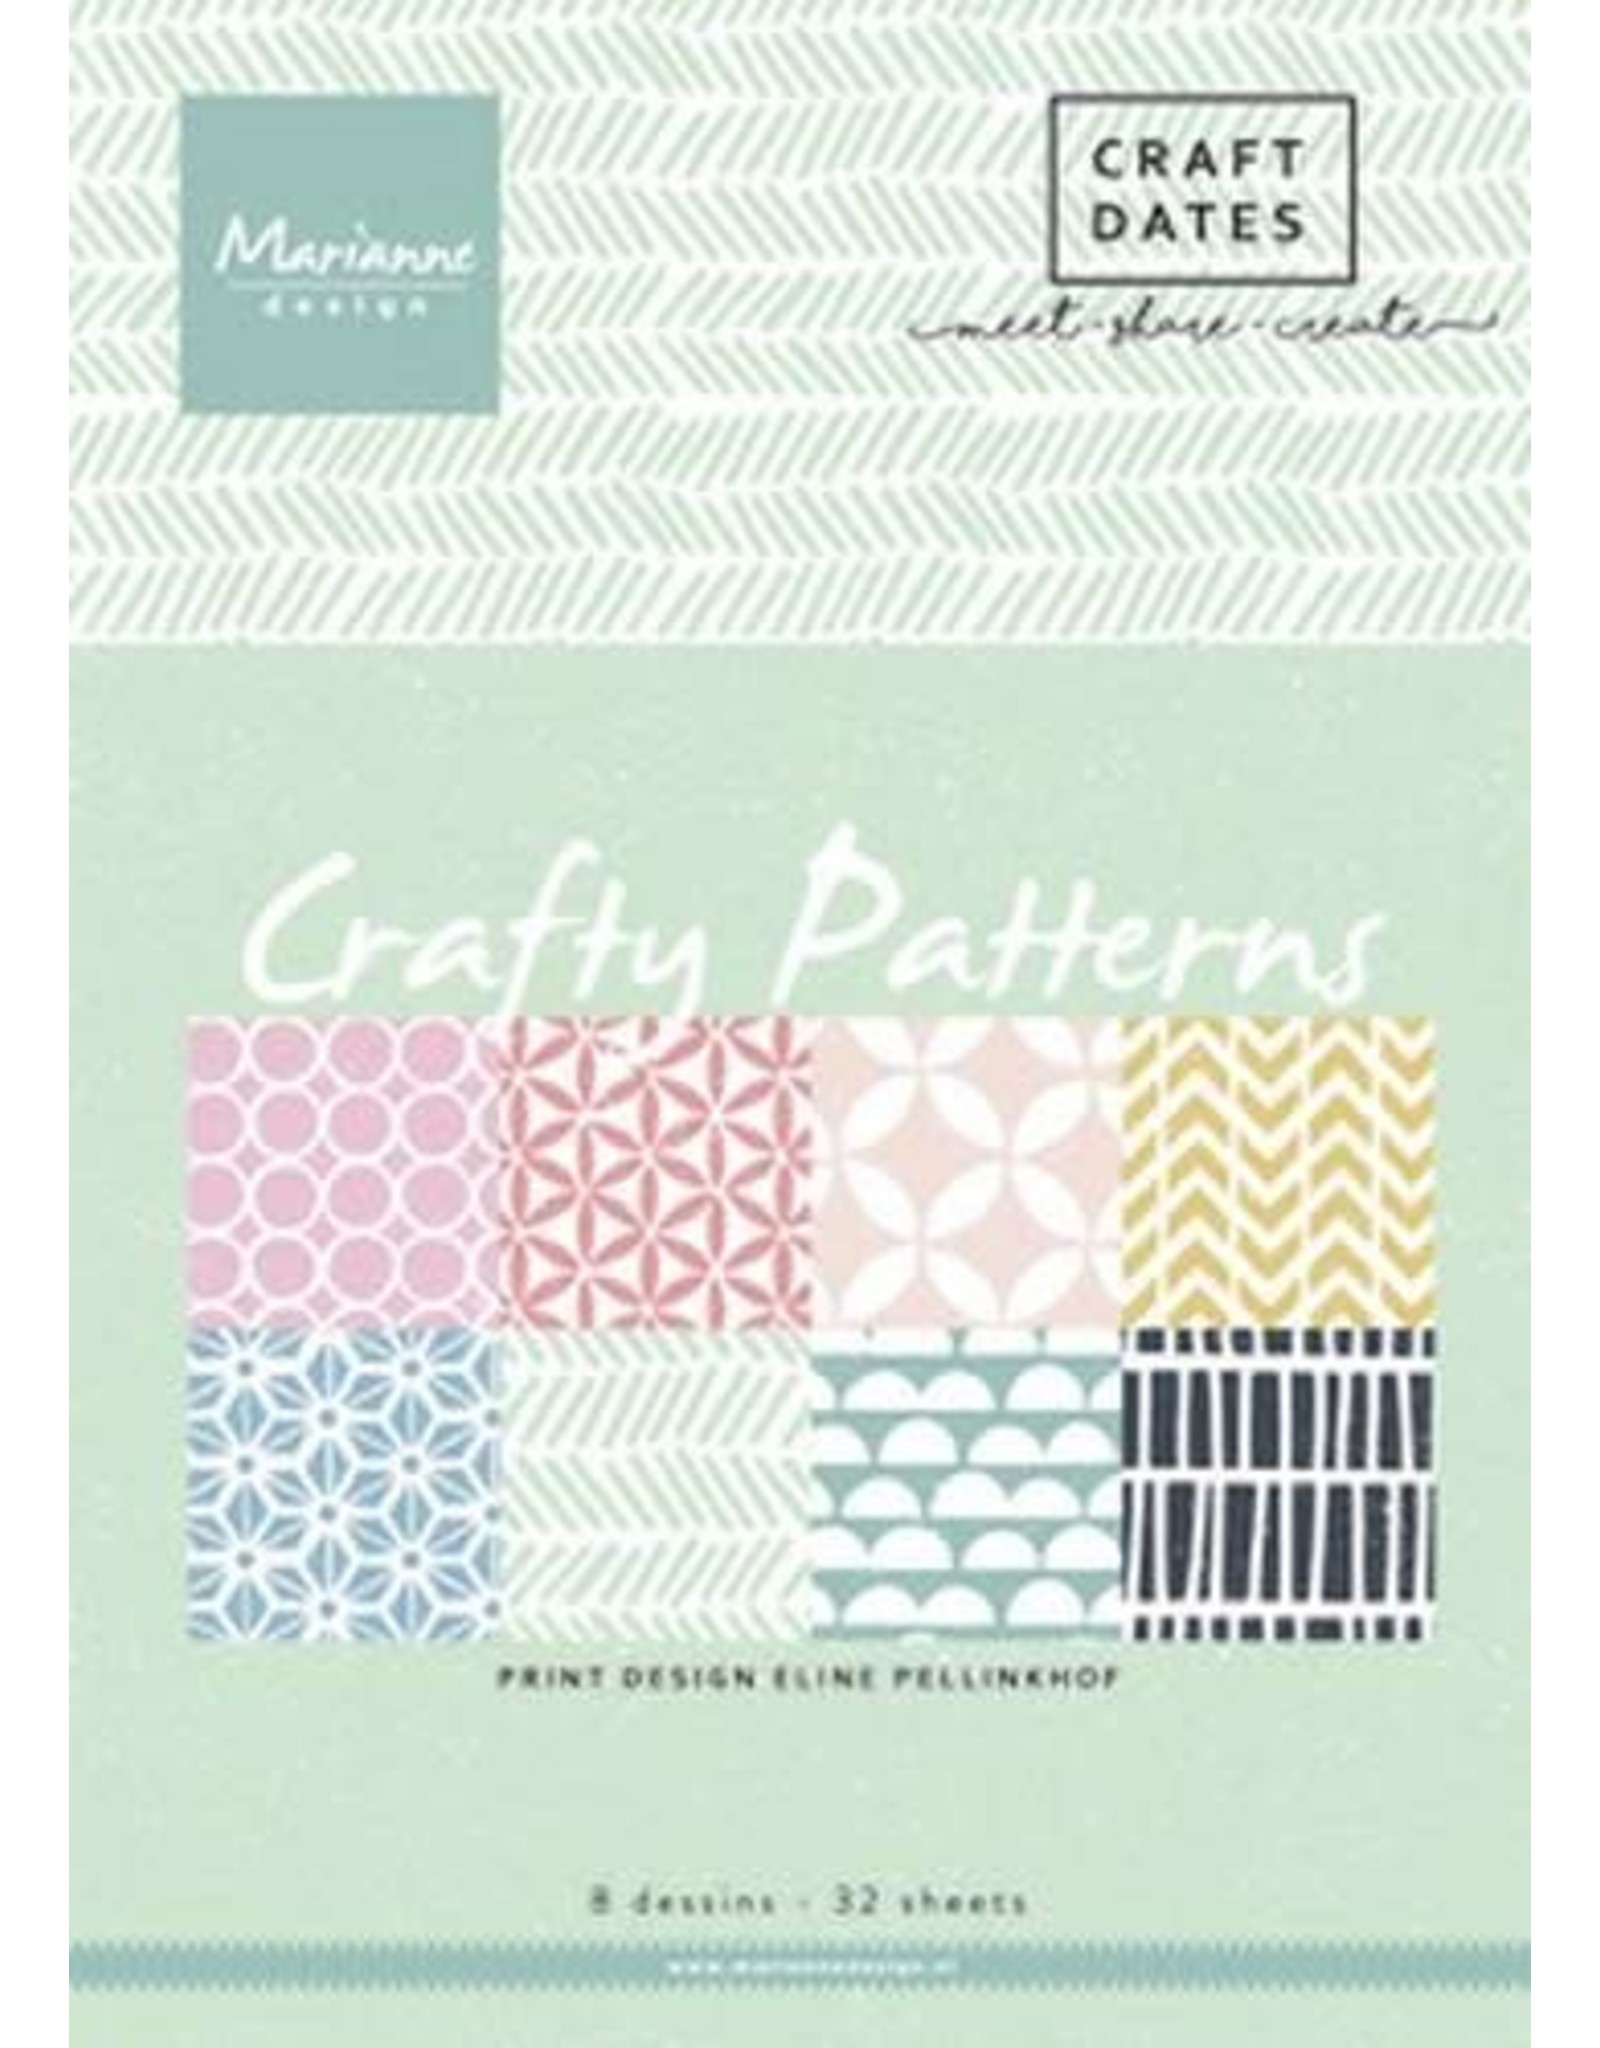 Marianne Design Marianne D Paper pad Crafty Patterns A5 PB7054